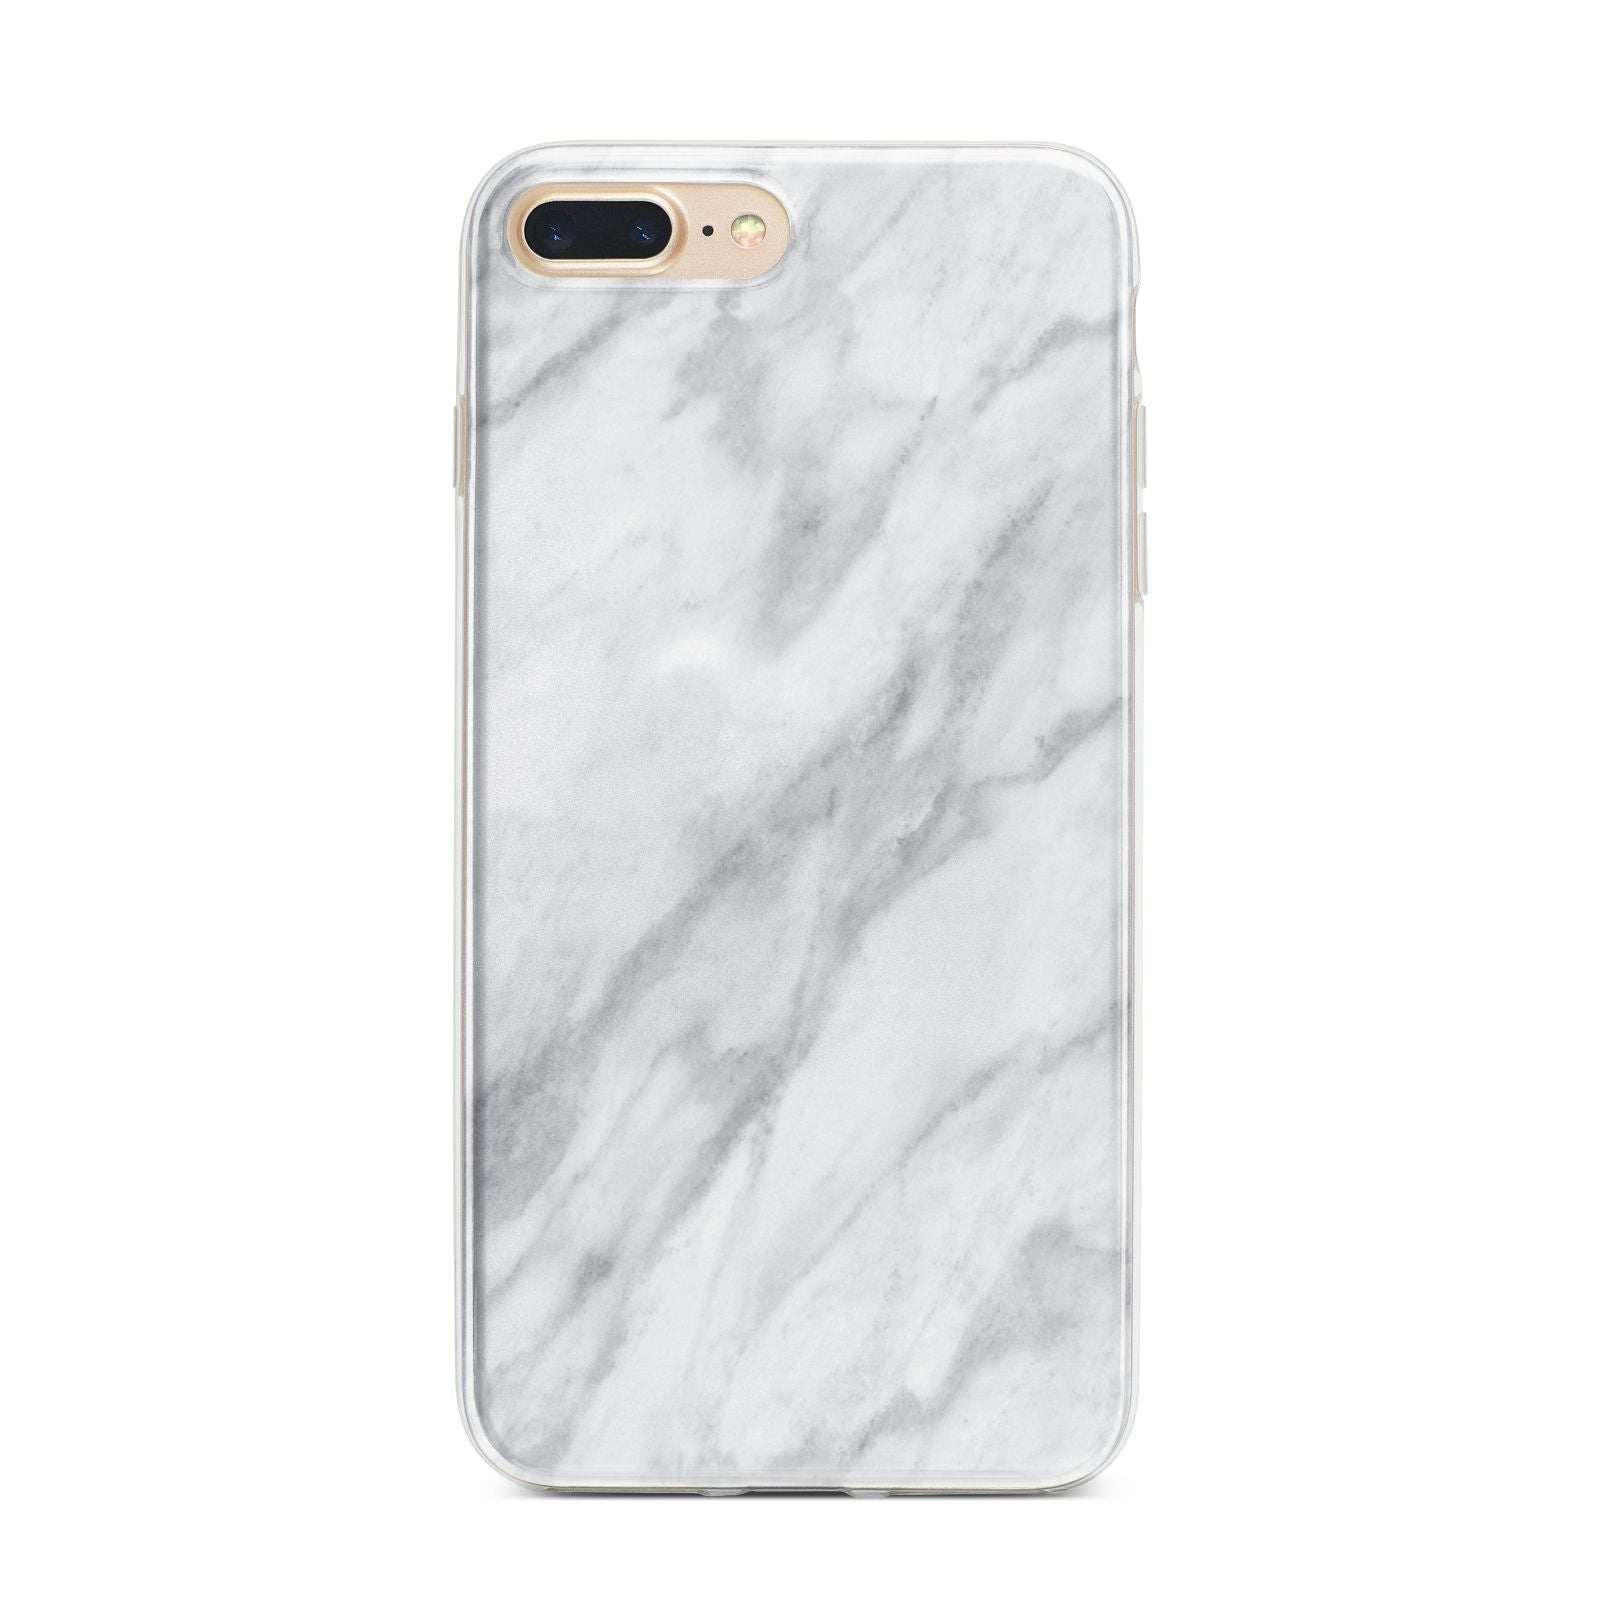 Faux Marble Effect Italian iPhone 7 Plus Bumper Case on Gold iPhone